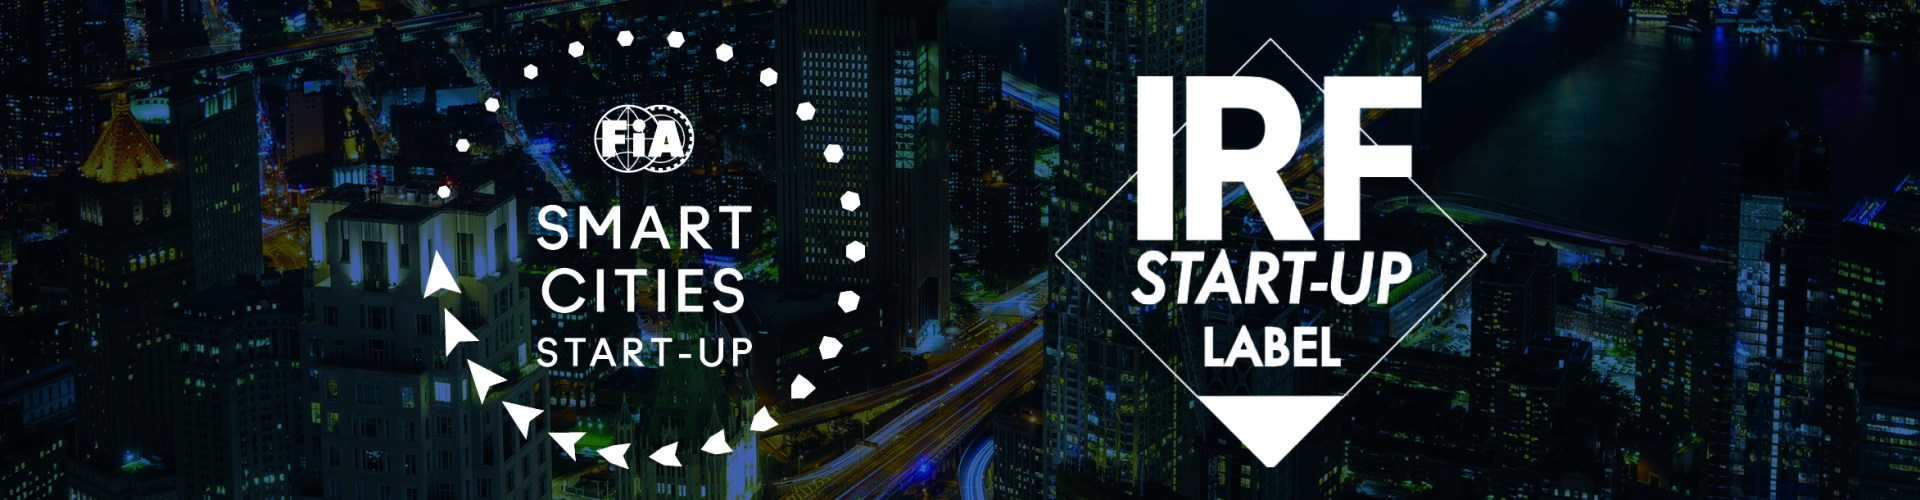 THE FIA SMART CITIES GLOBAL START-UP CONTEST AND IRF'S NEW START-UP LABEL JOIN FORCES TO SUPPORT INNOVATION IN MOBILITY